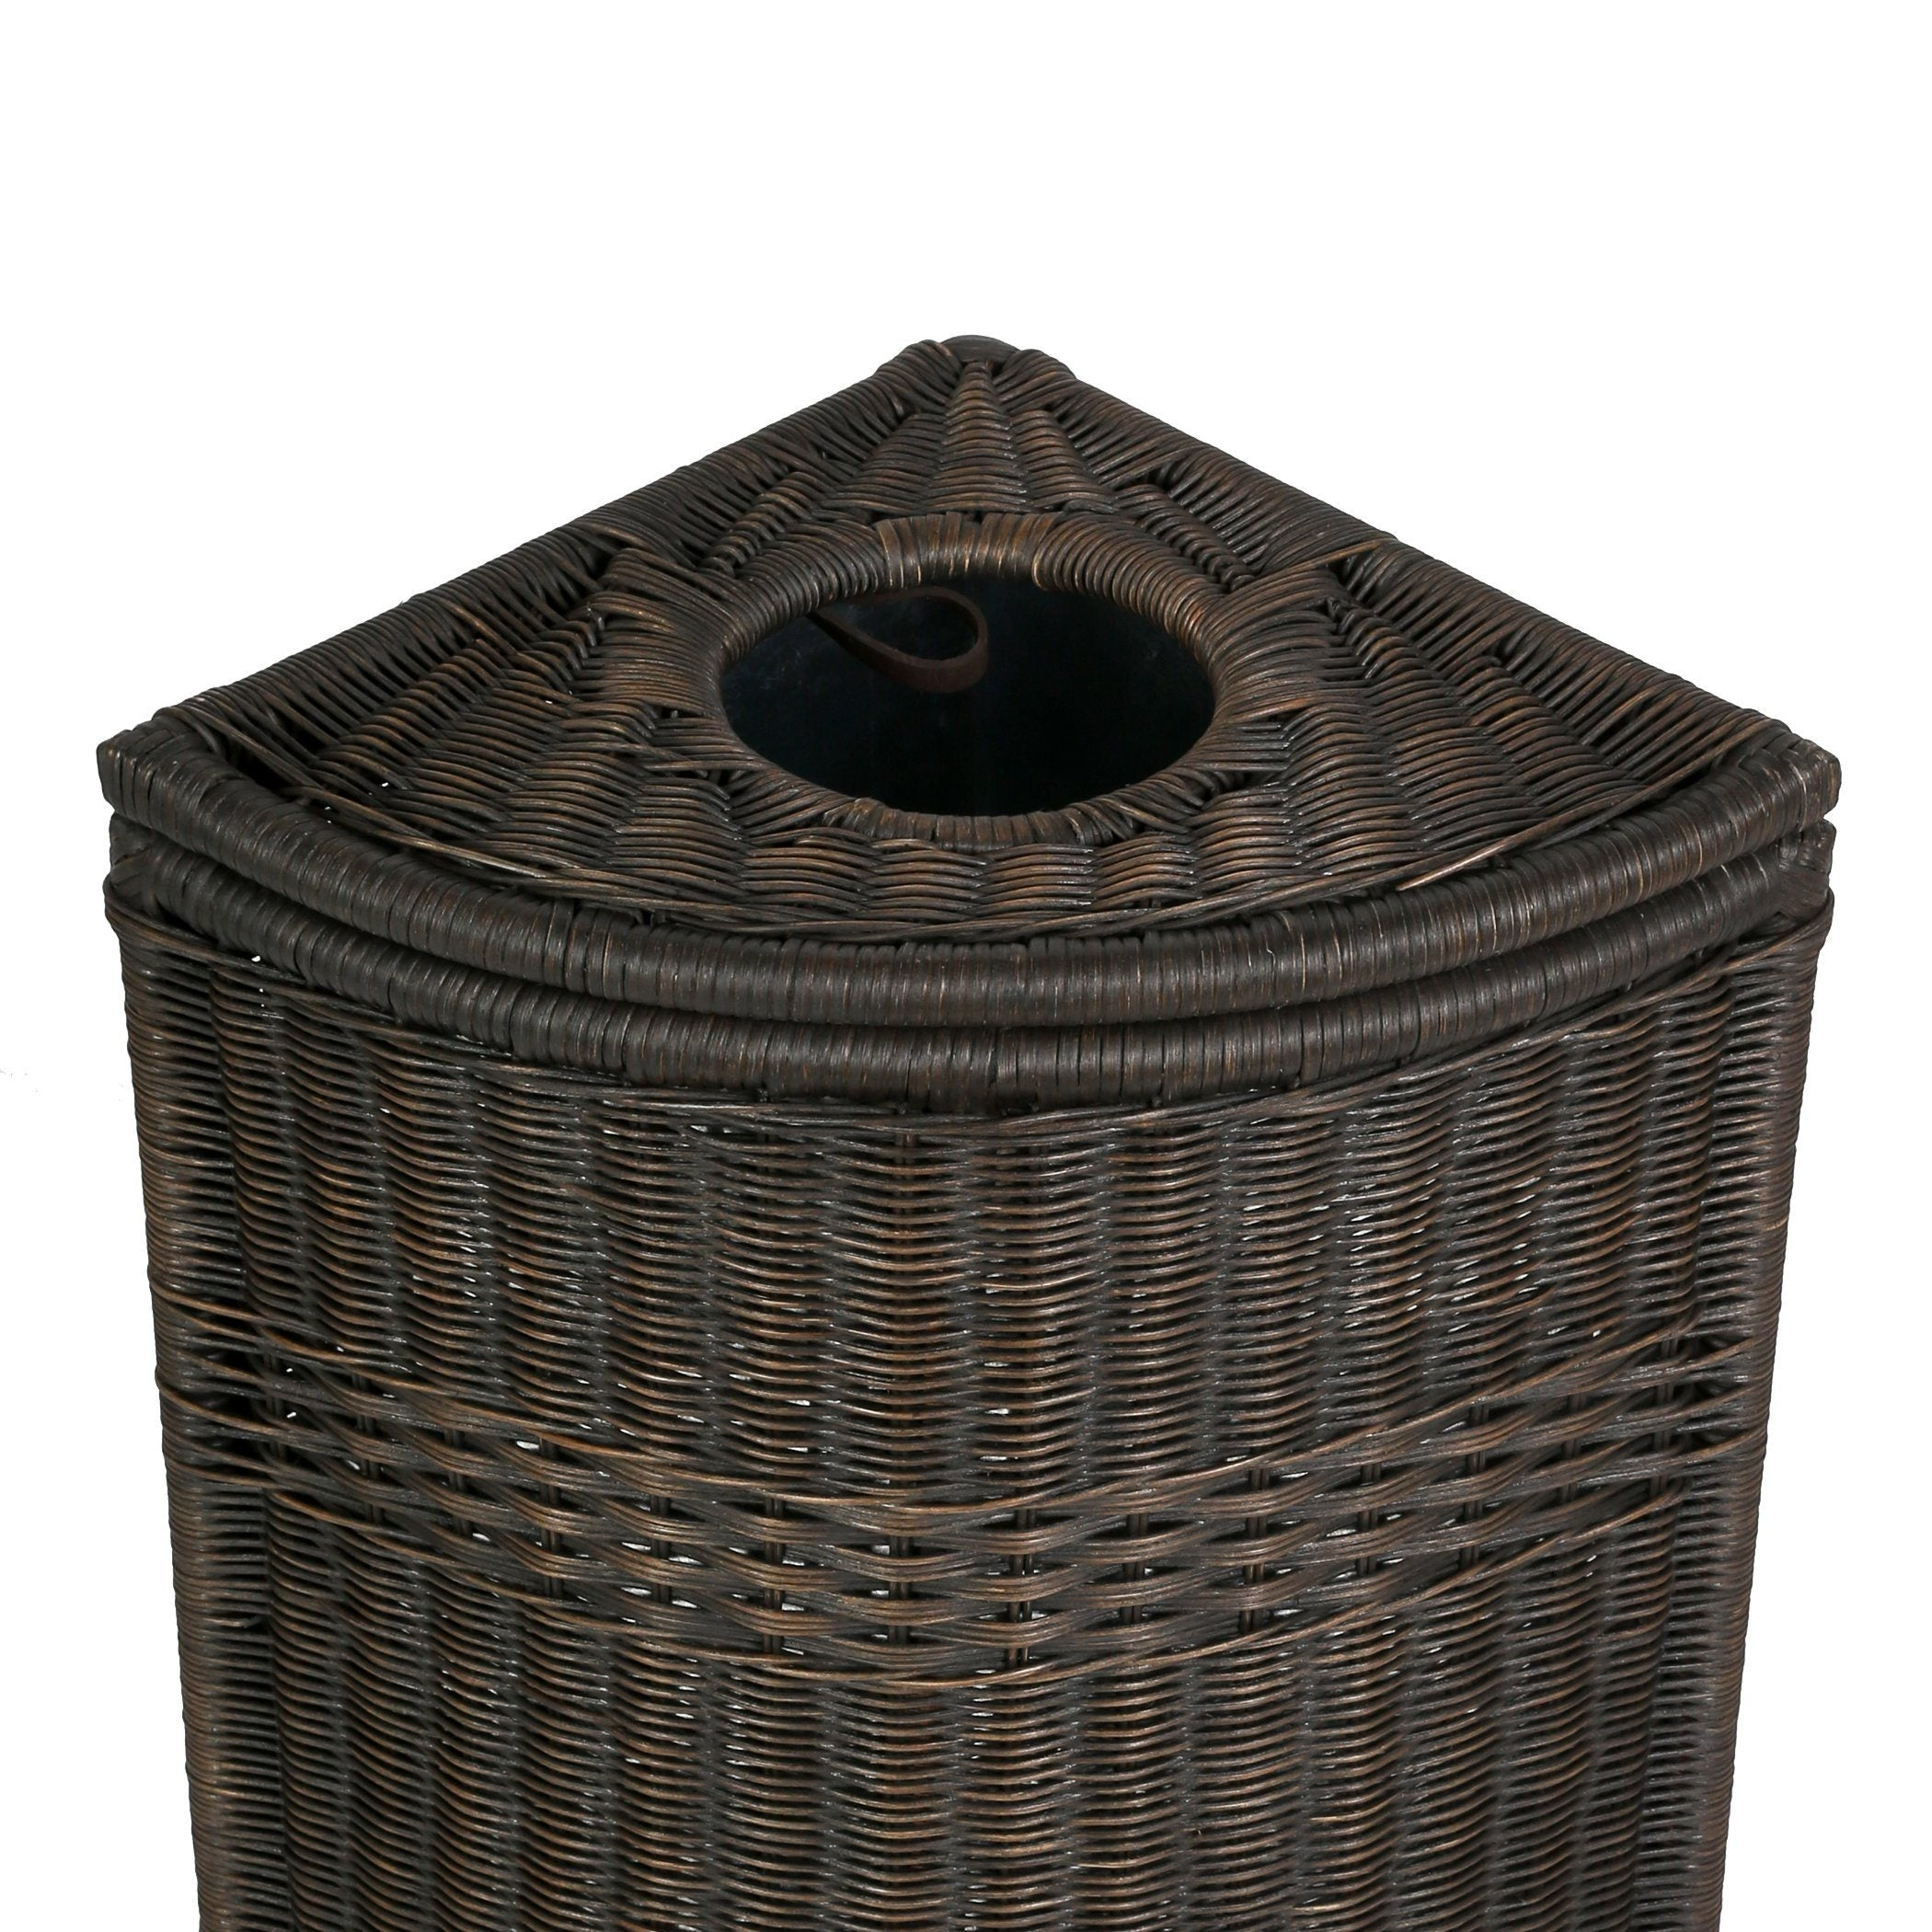 Drop in corner wicker waste basket with metal liner the basket lady - Wicker trash basket ...